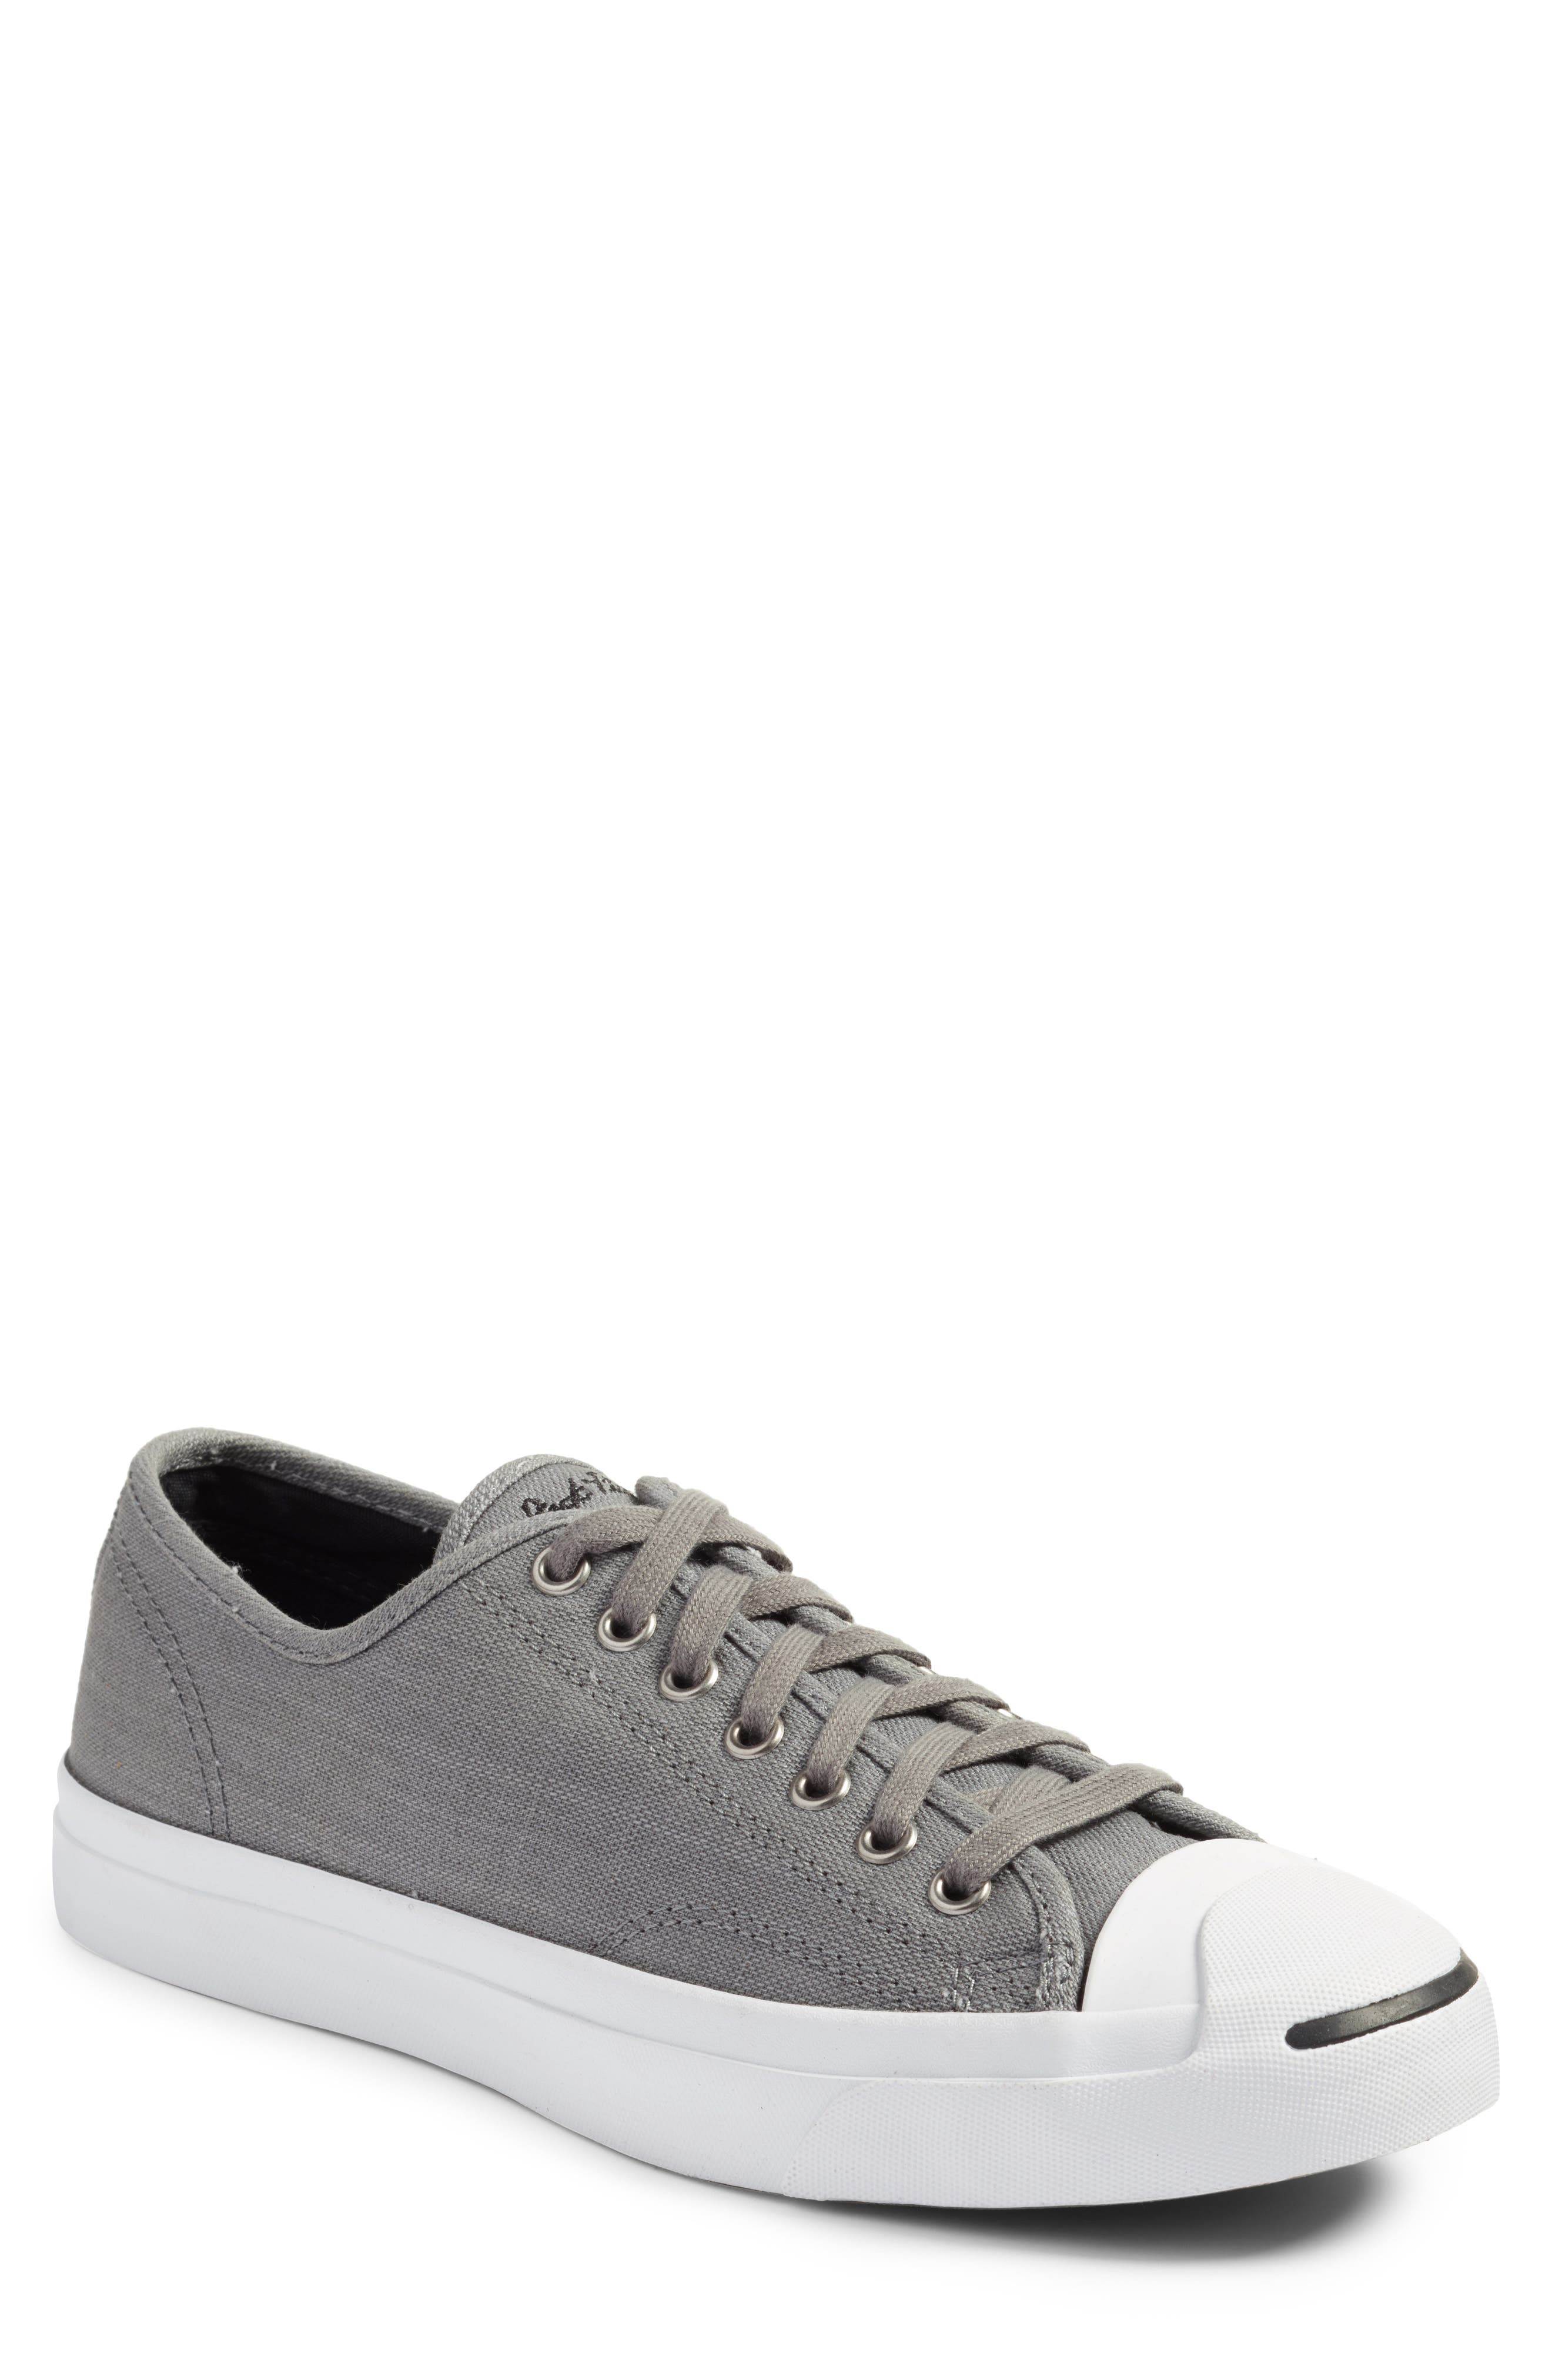 Main Image - Converse Jack Purcell Ox Sneaker (Men)